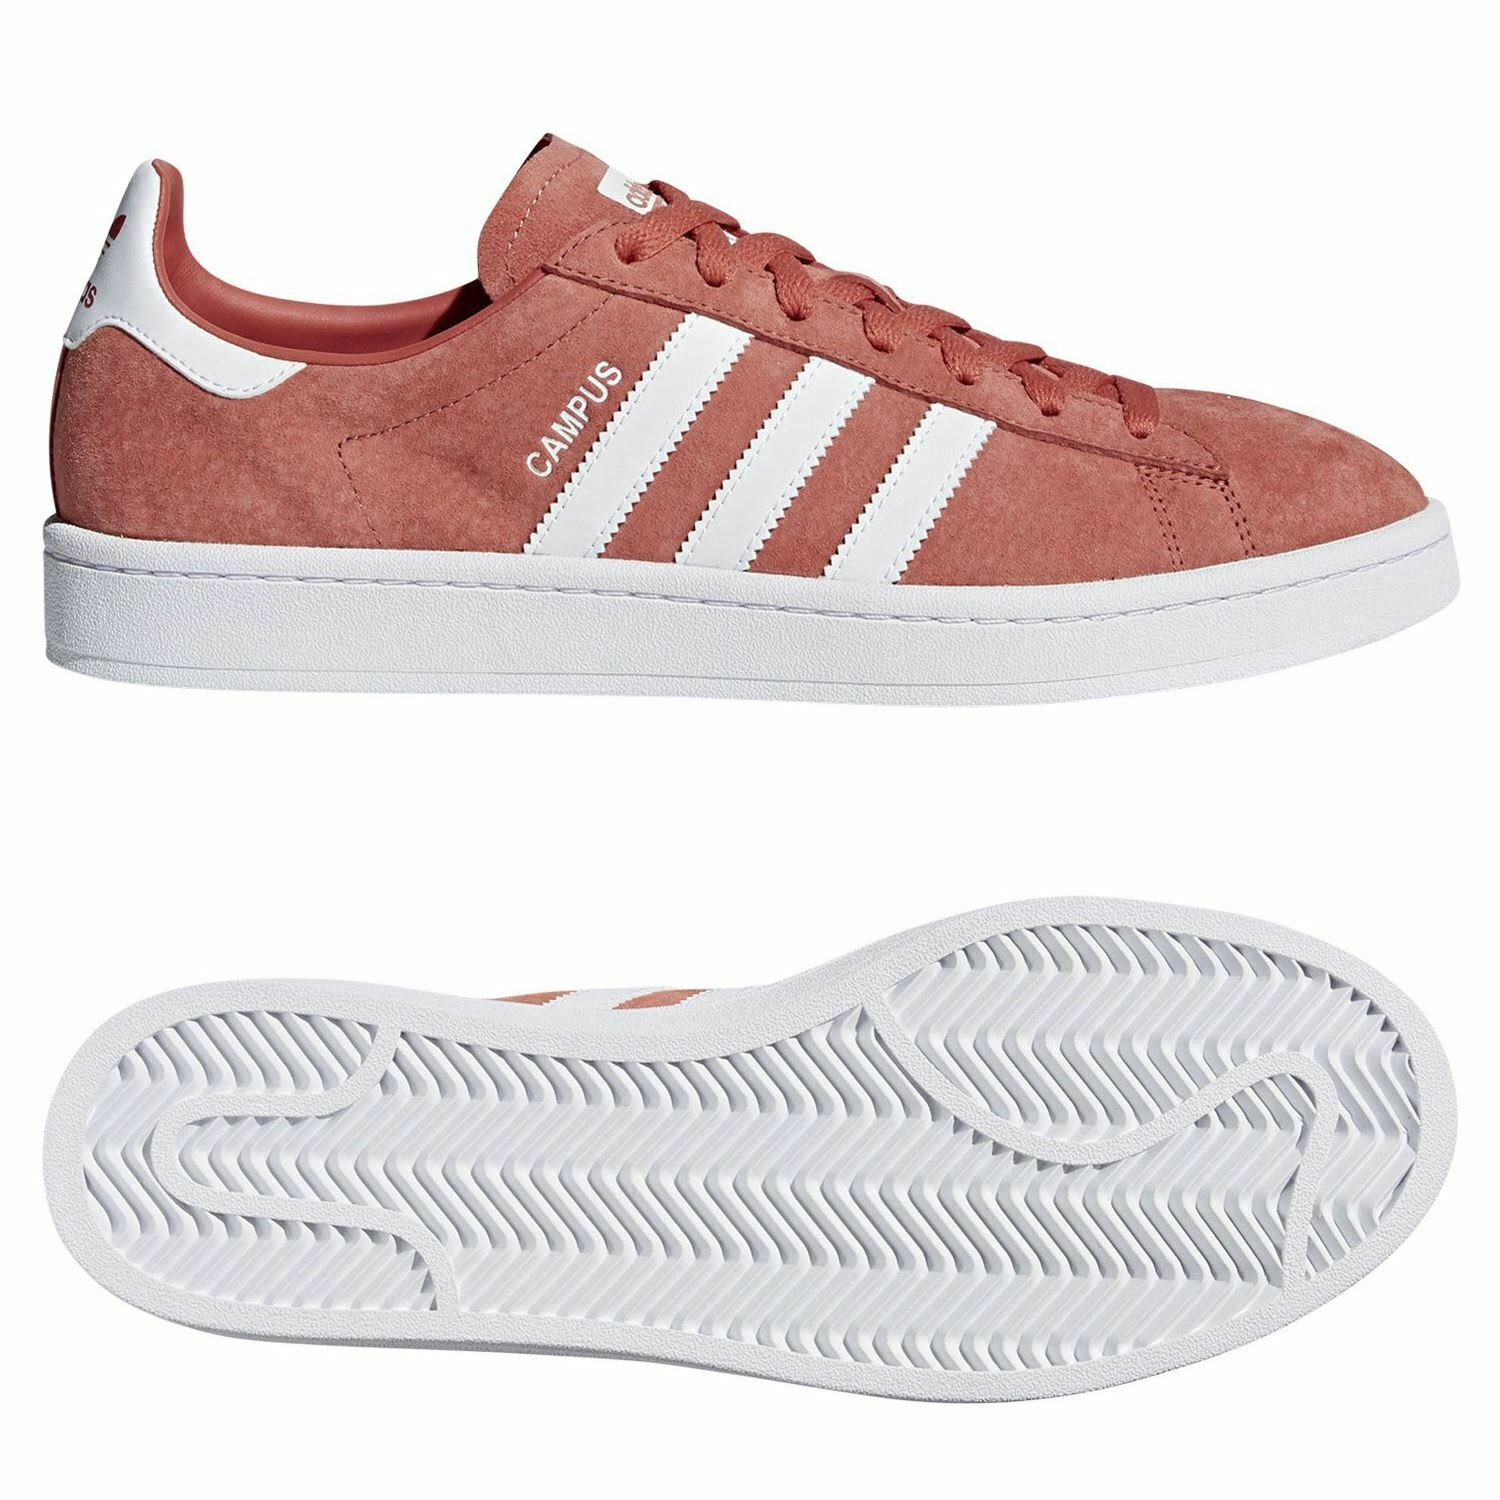 Adidas ORIGINALS MEN'S CAMPUS TRAINERS RED SNEAKERS SHOES TREFOIL NEW